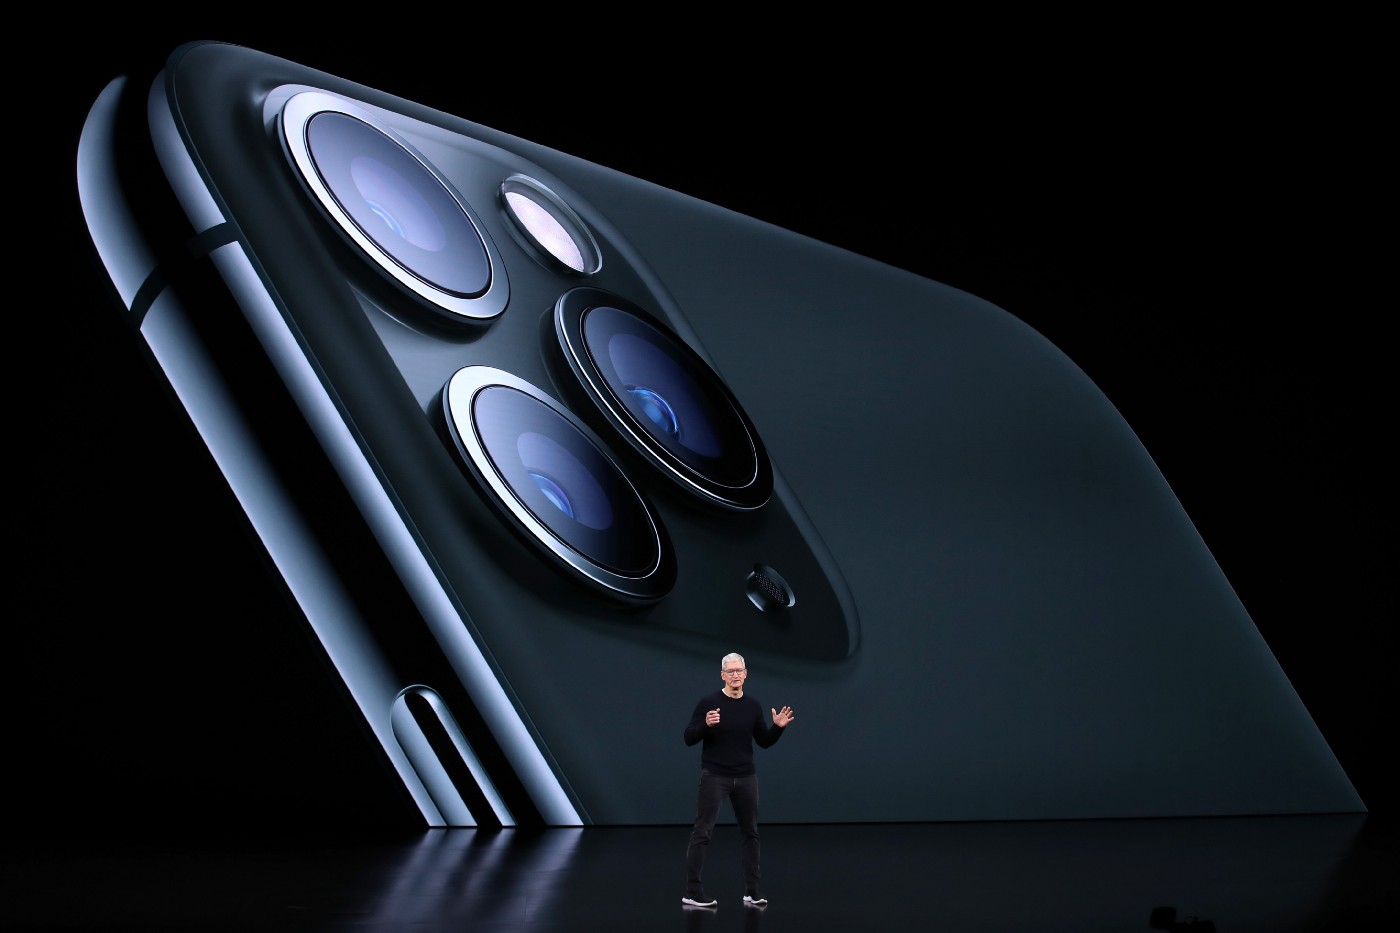 Apple CEO Tim Cook unveils the iPhone 11 Pro during his keynote address during a special event on September 10, 2019,